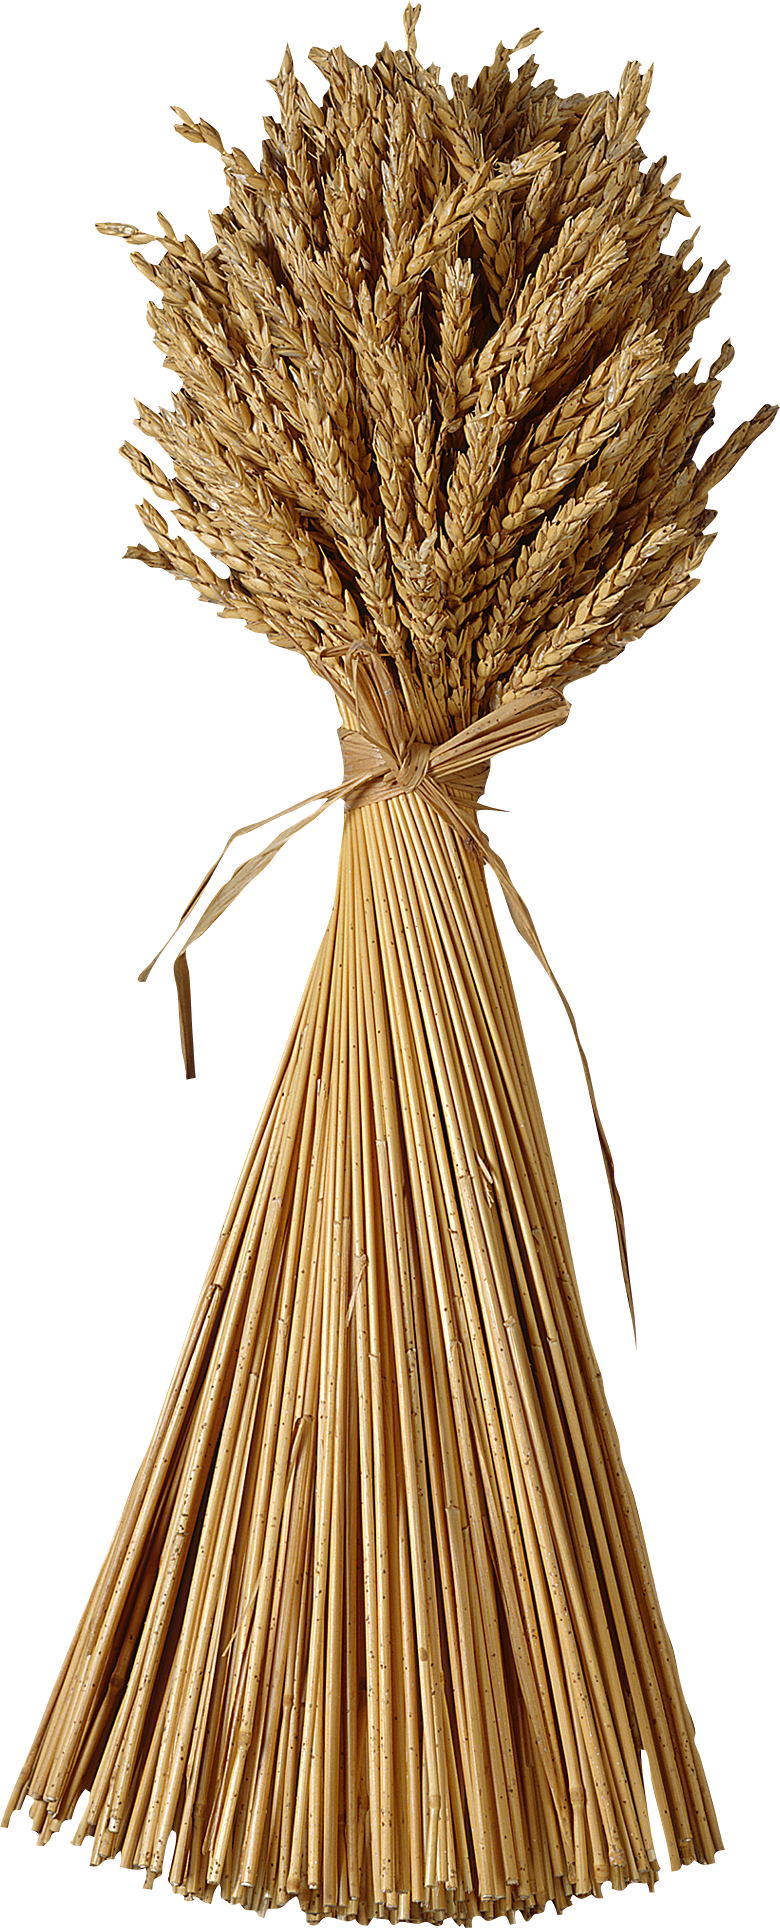 Grain clipart wheat straw. Png images free download